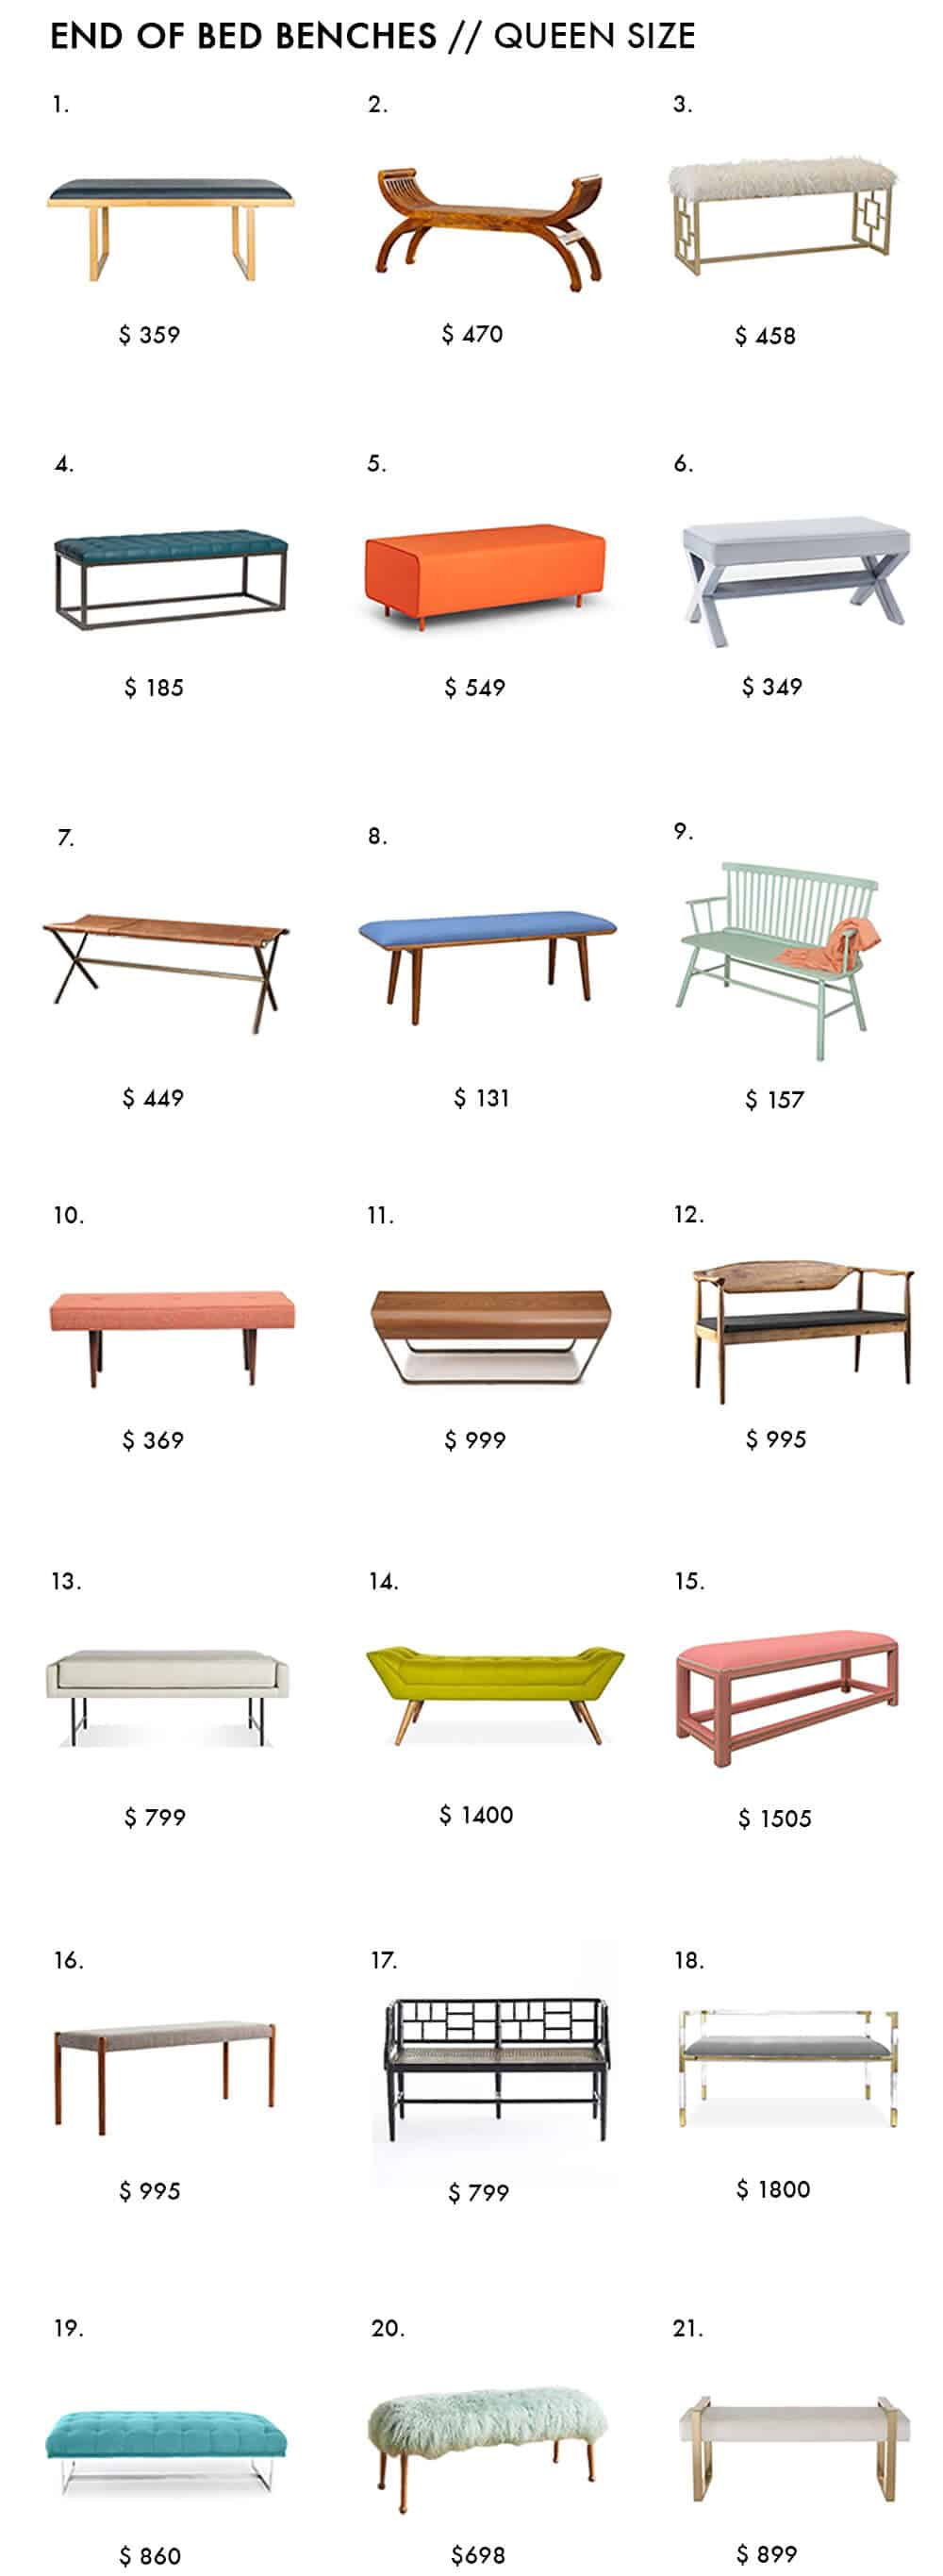 End of Bed Bench Roundup Emily Henderson Bedroom Design Queen Size